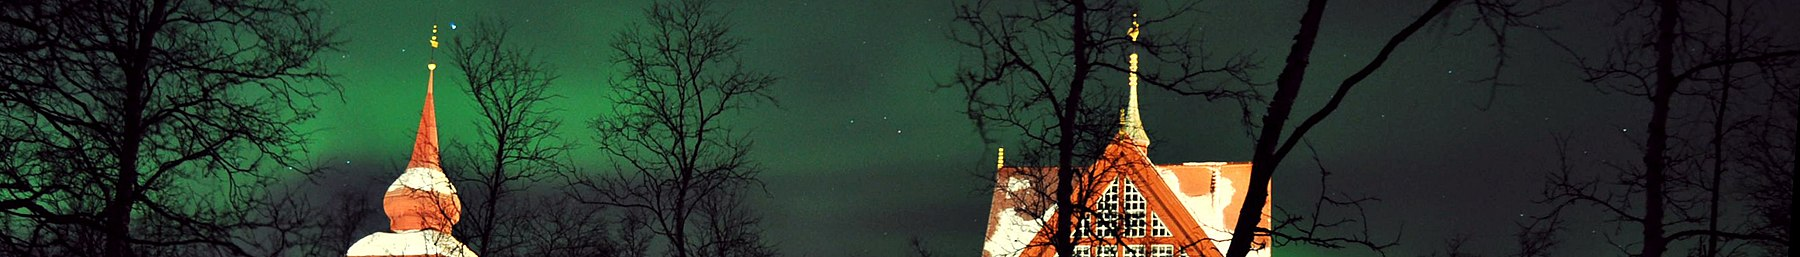 Kiruna banner Northern lights over church.jpg